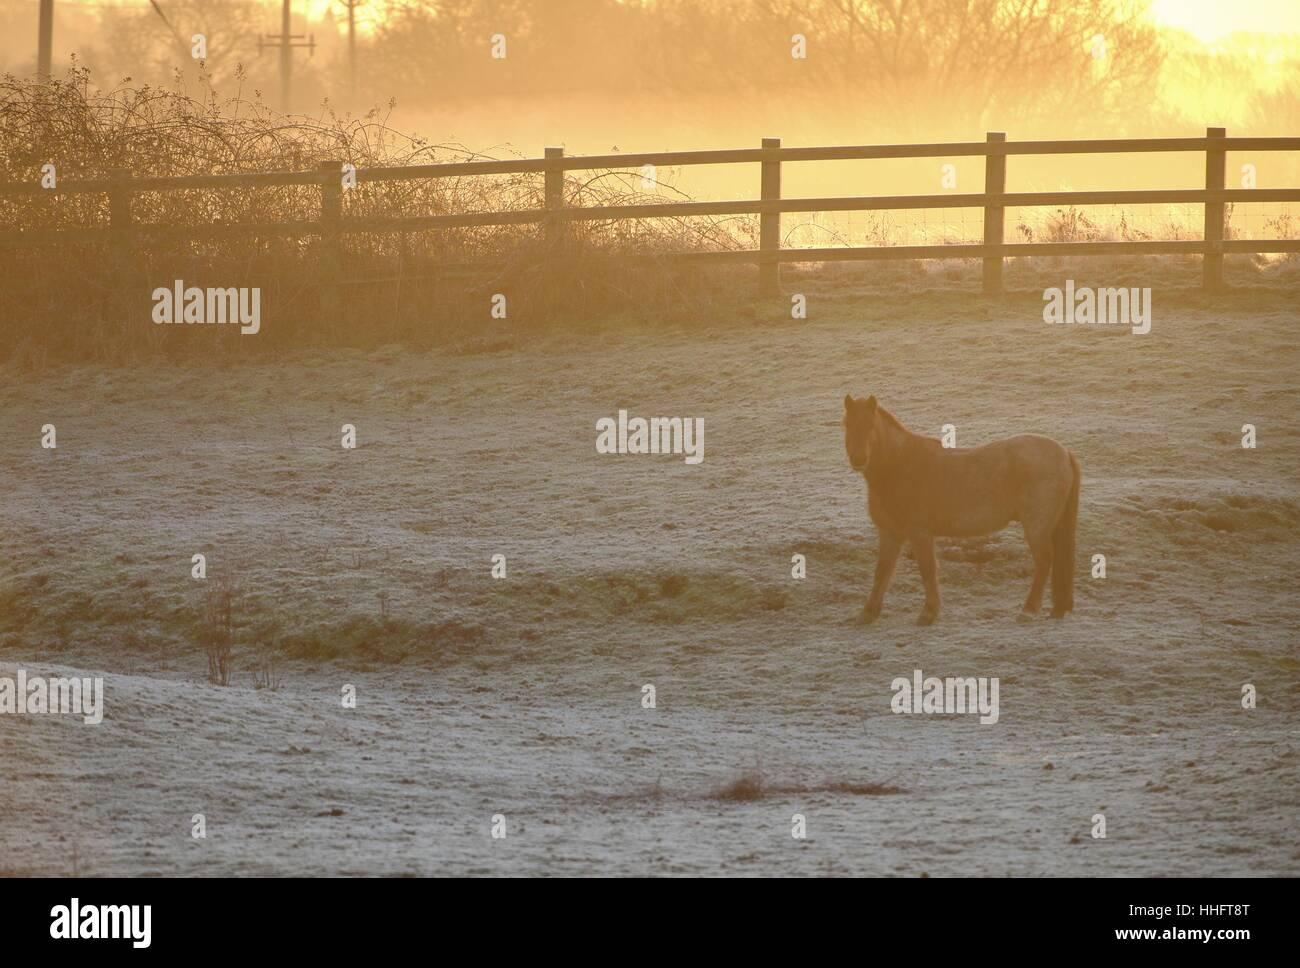 Firle, East Sussex, UK. 19th January 2017. Cold start to the day in East Sussex as temperatures stay well below - Stock Image